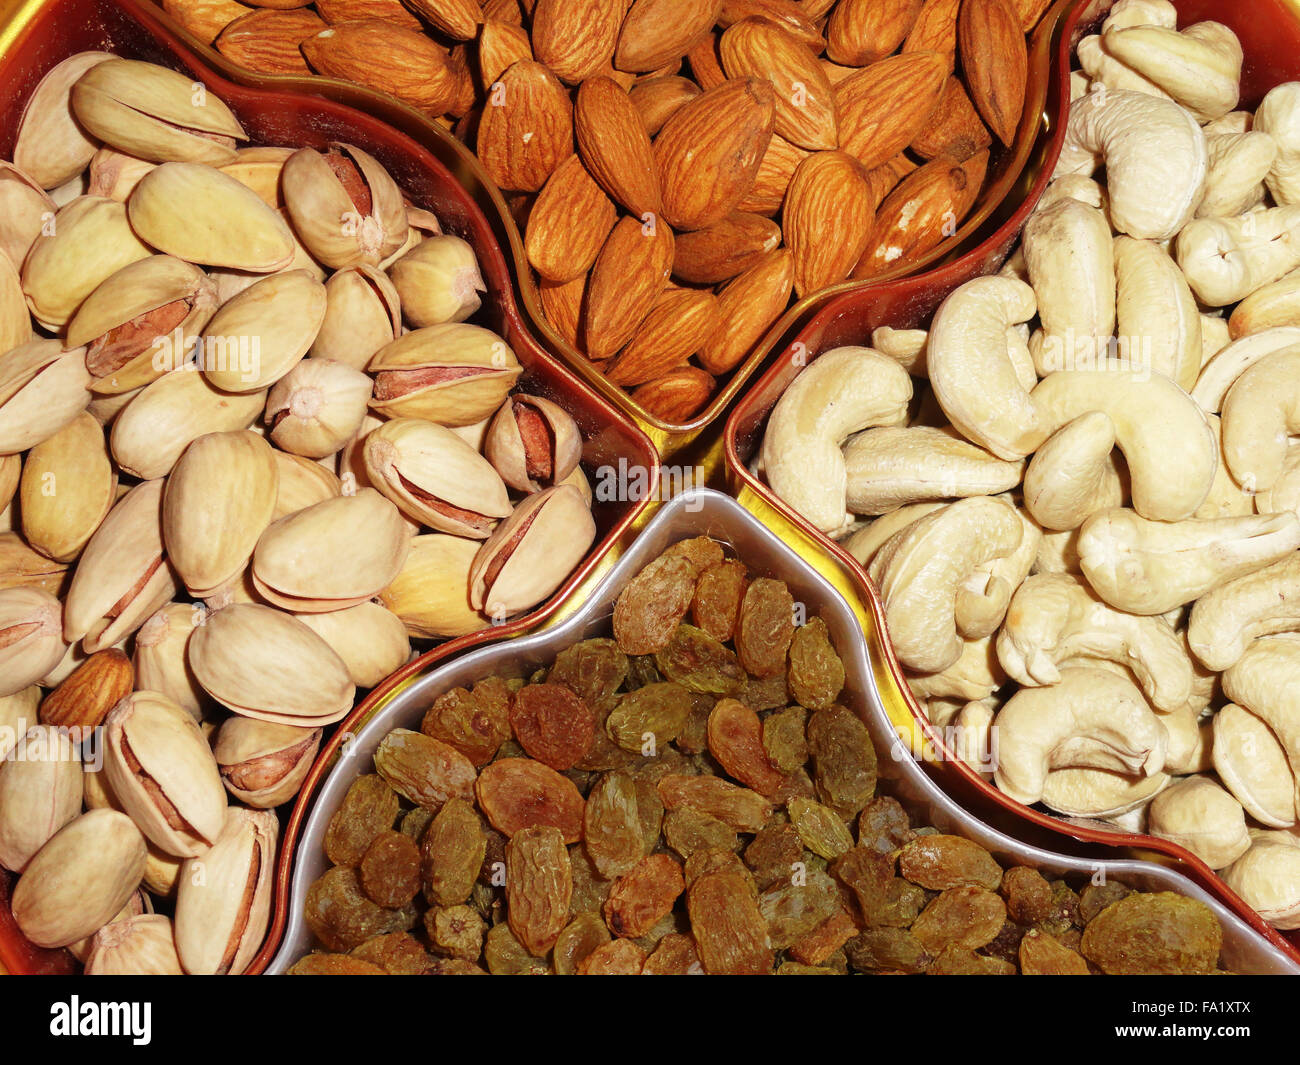 Delicious Healthy Mixed Dry Fruits, Cashew Nut and Pistachio - Stock Image